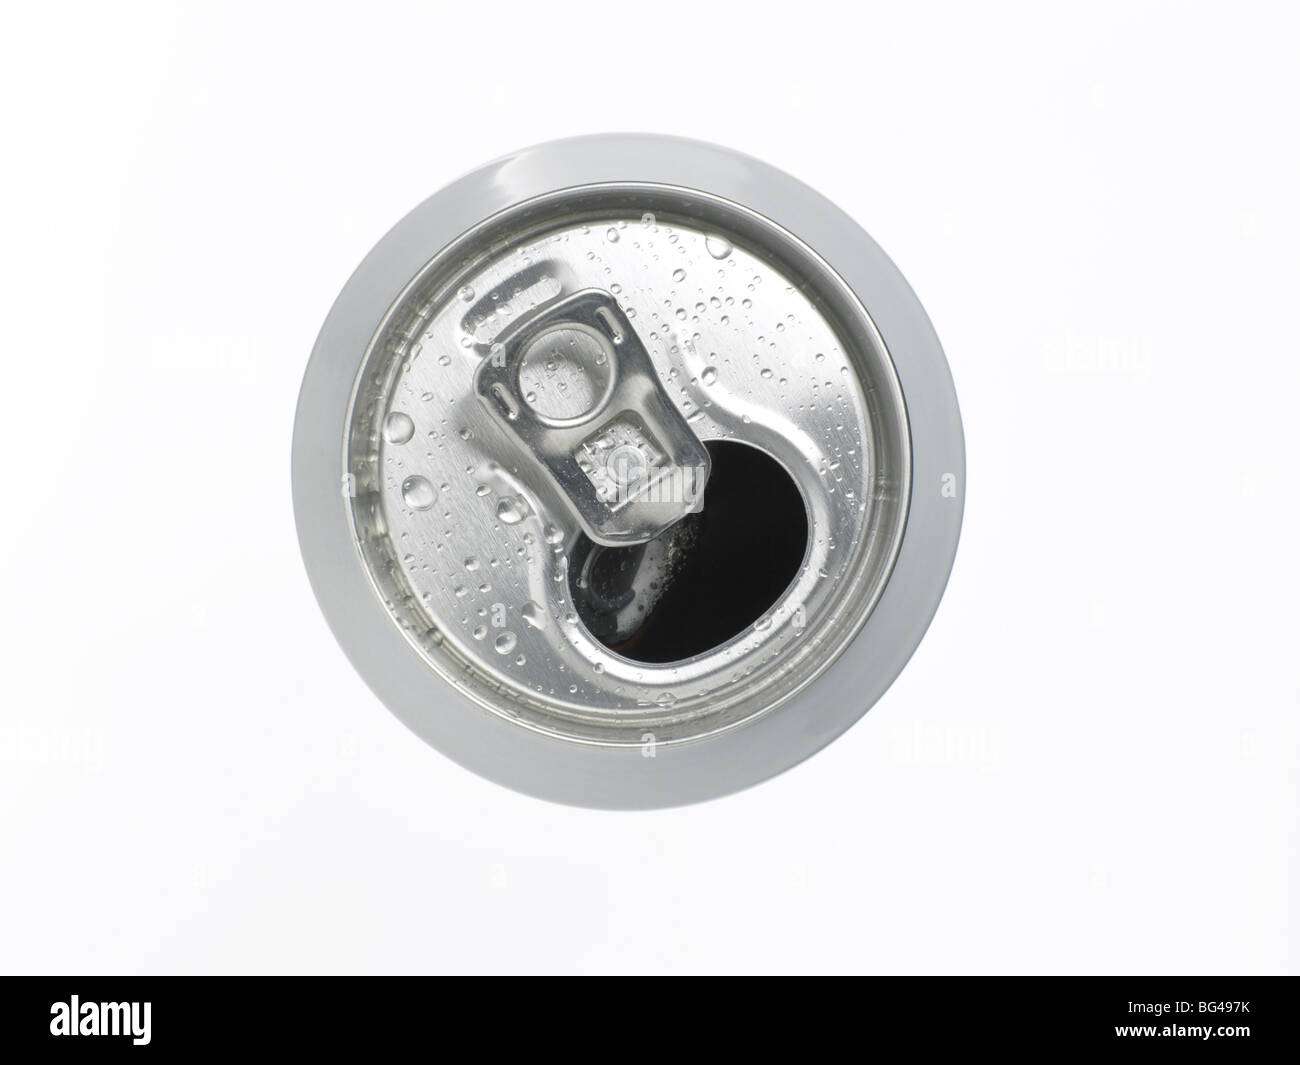 opened can of drink - Stock Image